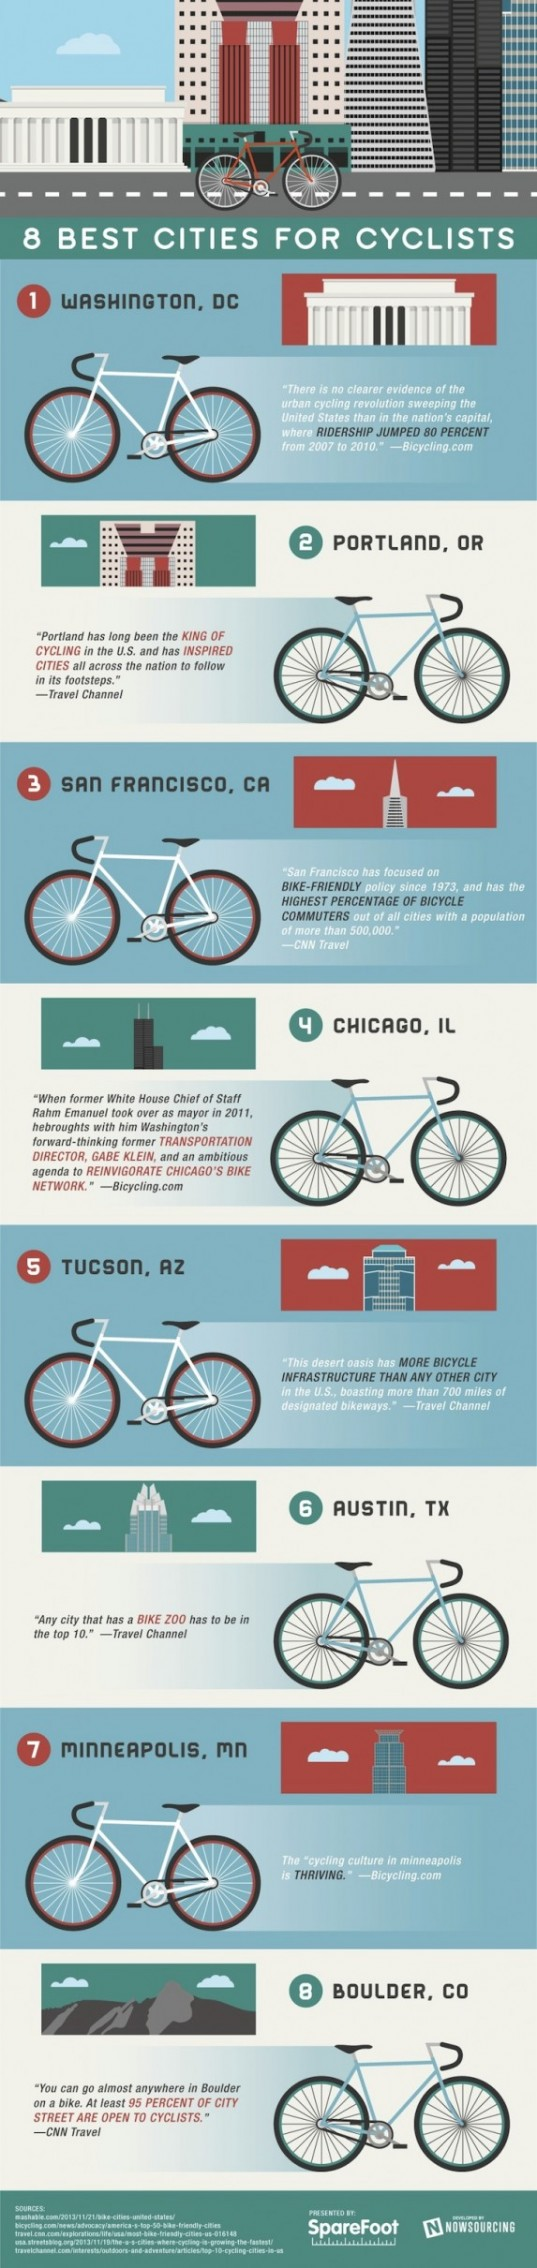 8 best cities for cyclists, sparefoot, infographic, bicycle infographic, cyclist infographic, national bike month, bike month, reader submitted content, nowsourcing,